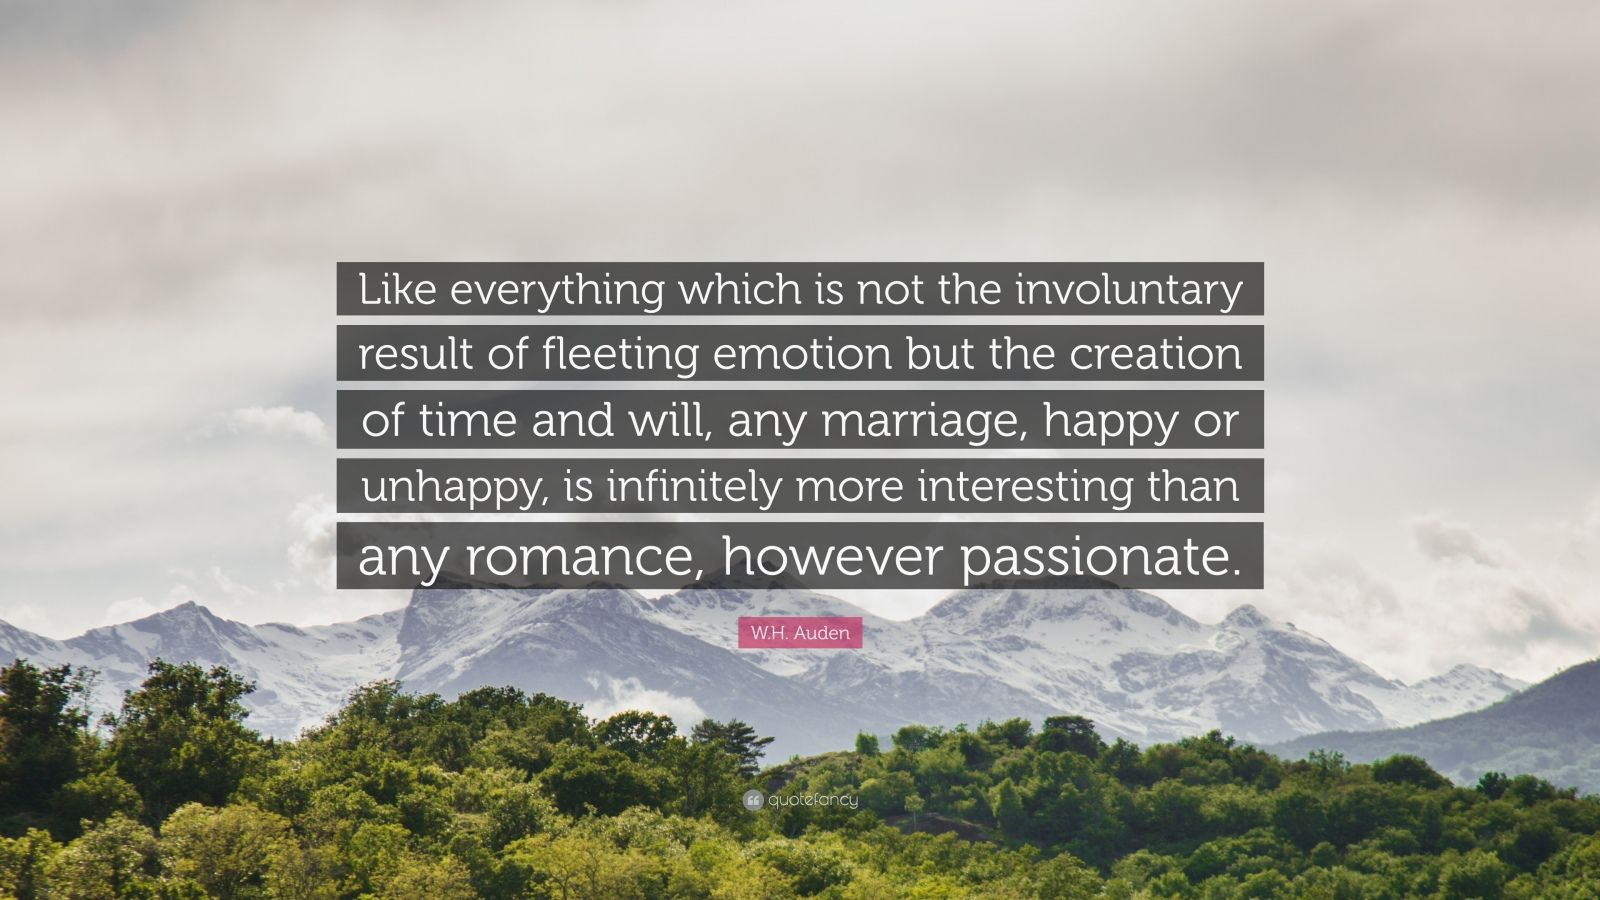 "W.H. Auden Quote: ""Like everything which is not the involuntary result of fleeting emotion but the creation of time and will, any marriage, happy or unhappy, is infinitely more interesting than any romance, however passionate."""